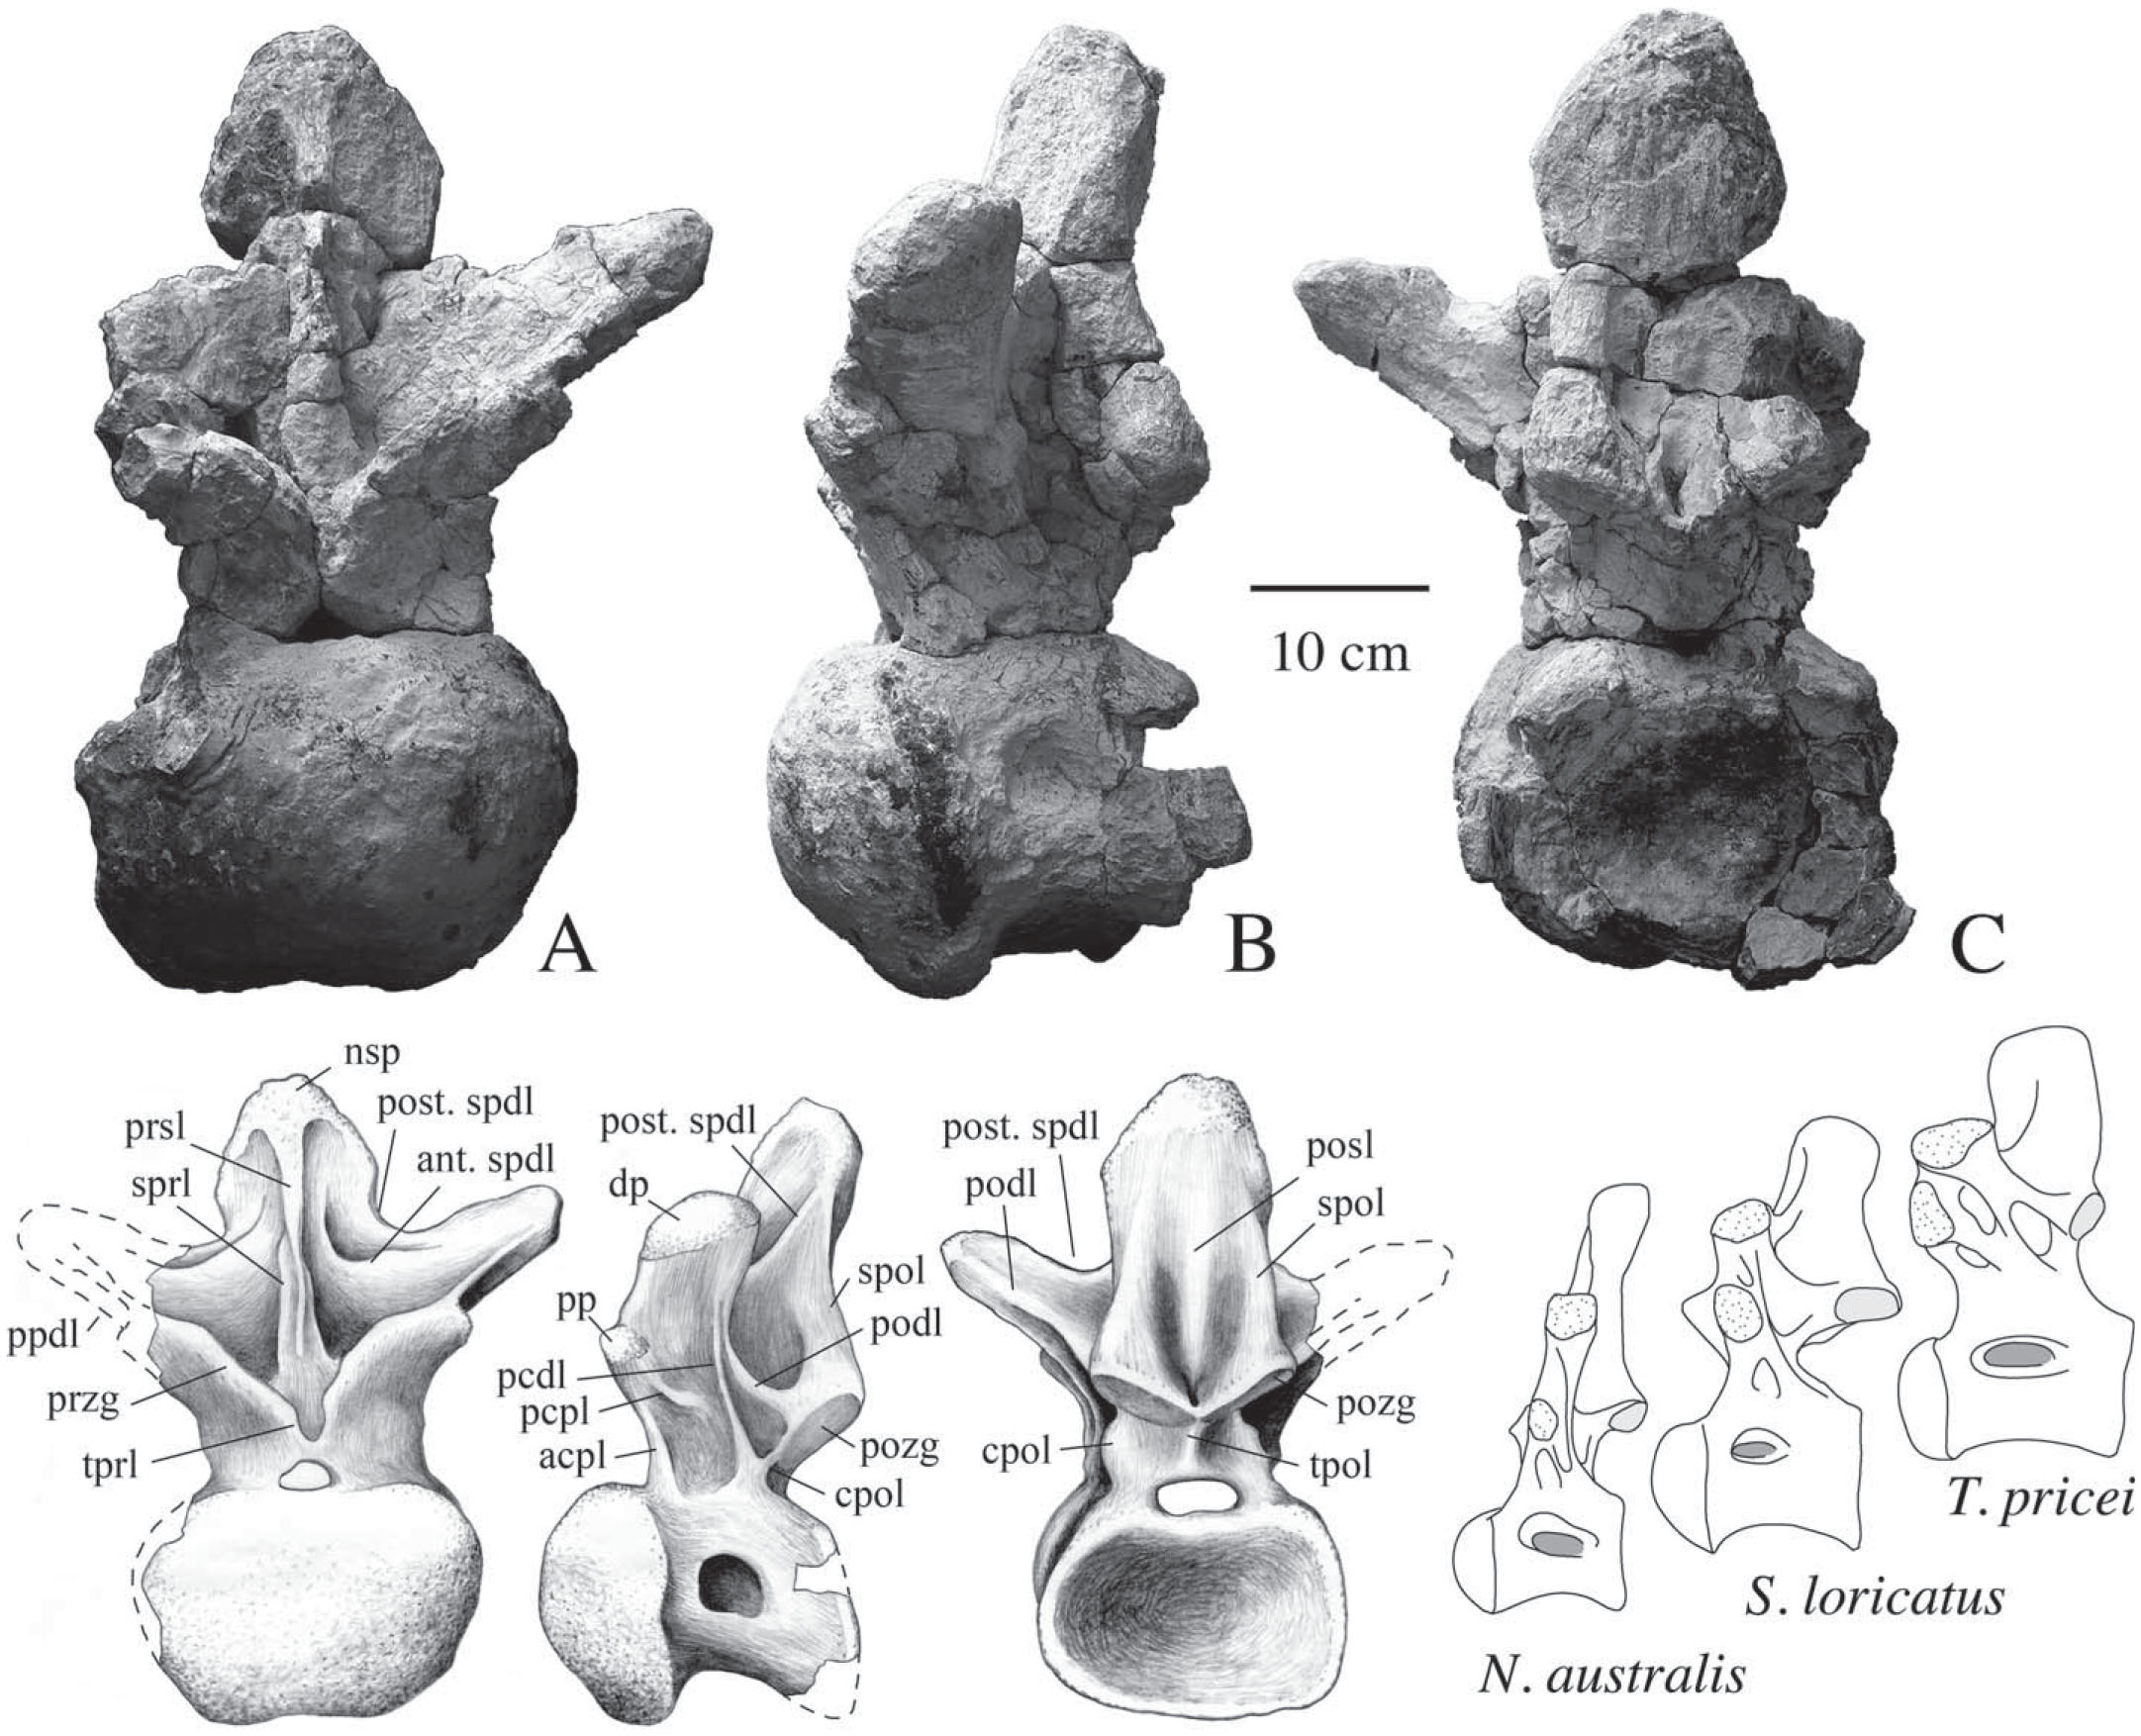 New Specimens of a Titanosaur Sauropod from the